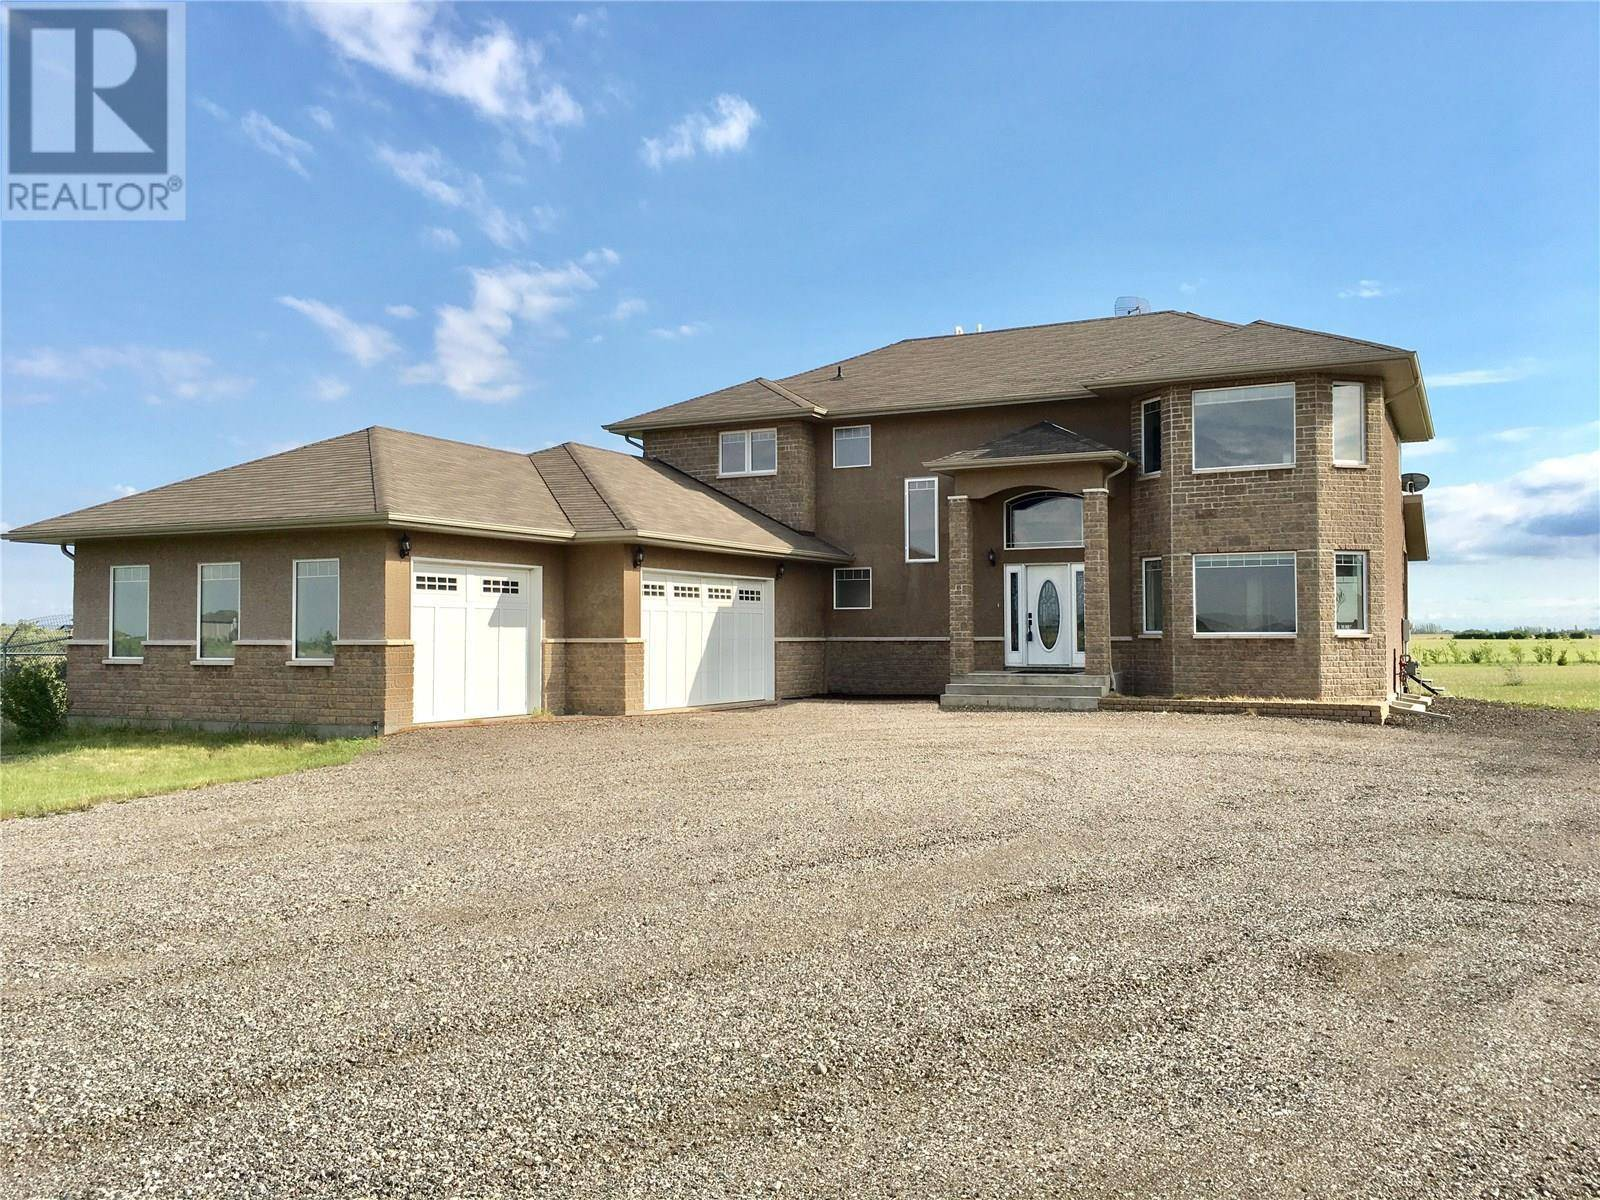 House for sale at 81 Cathedral Bluffs By Corman Park Rm No. 344 Saskatchewan - MLS: SK782522